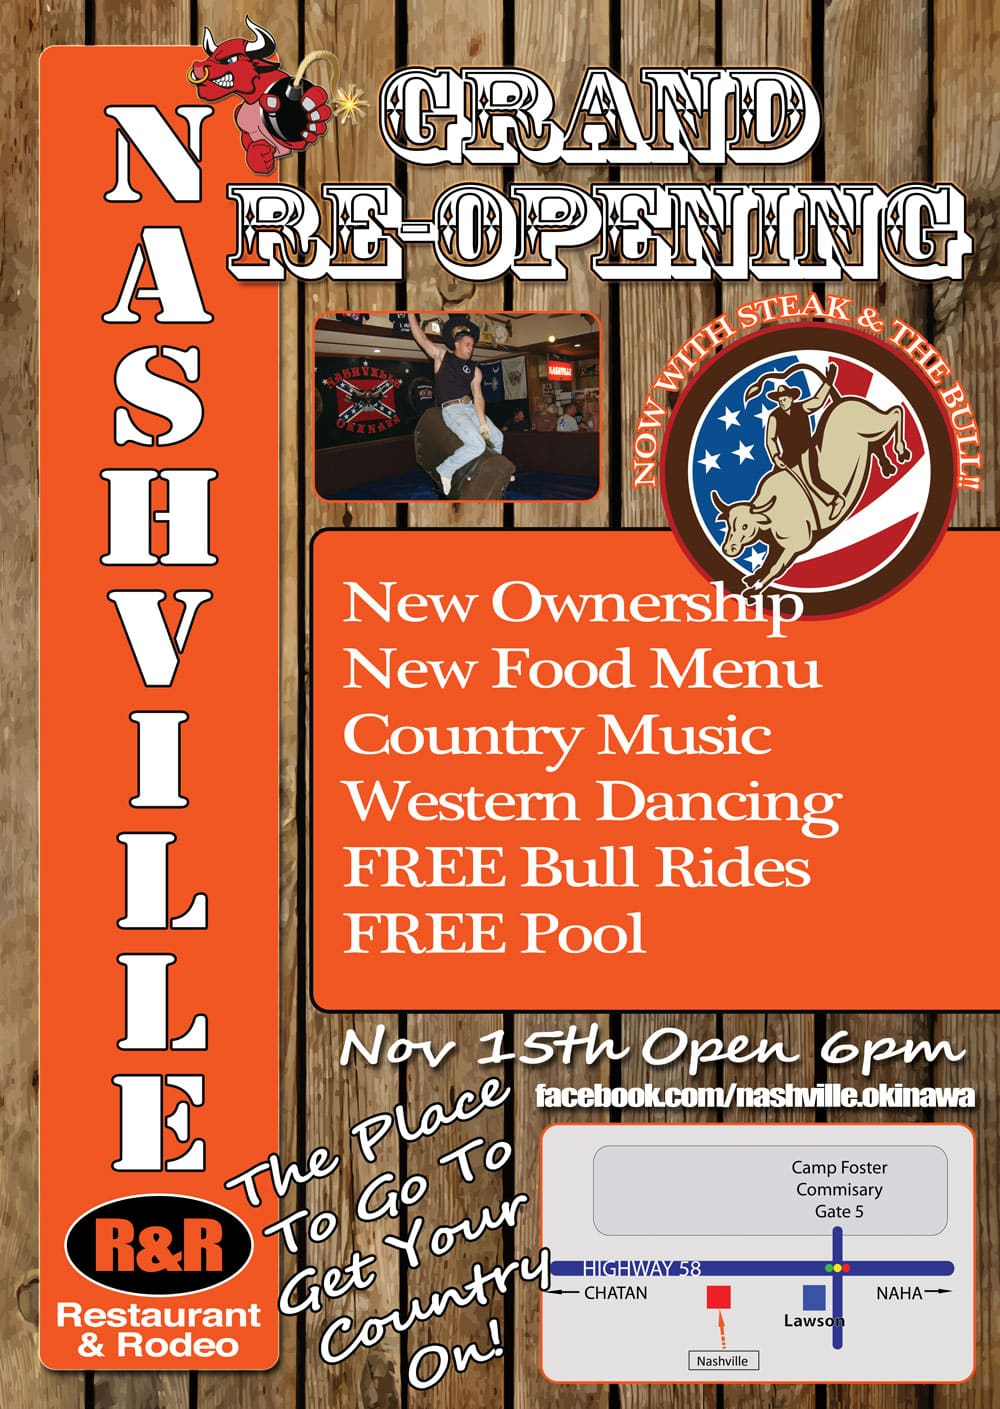 Nashville R&R Re-Opening Party